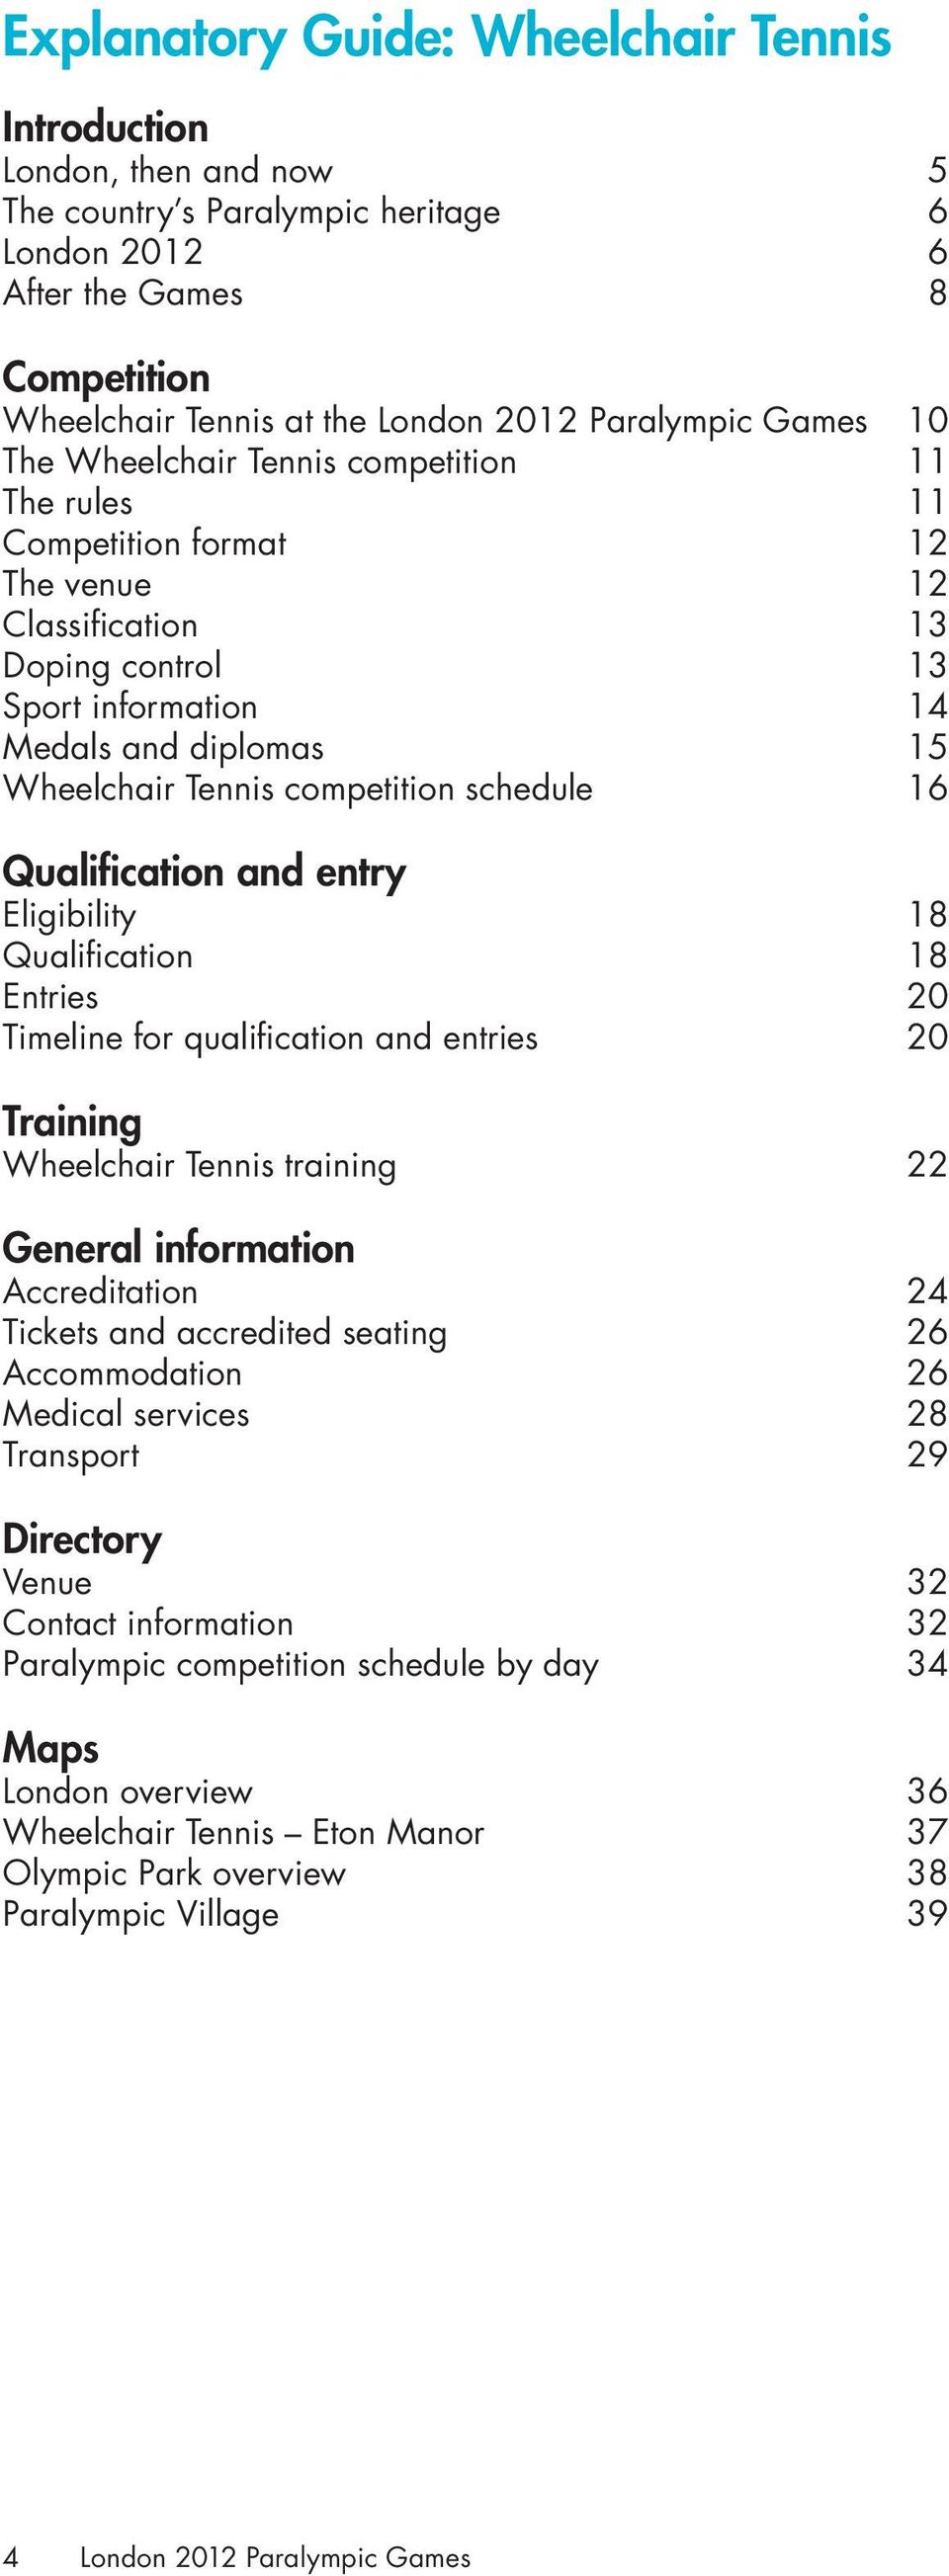 Tennis competition schedule 16 Qualification and entry Eligibility 18 Qualification 18 Entries 20 Timeline for qualification and entries 20 Training Wheelchair Tennis training 22 General information